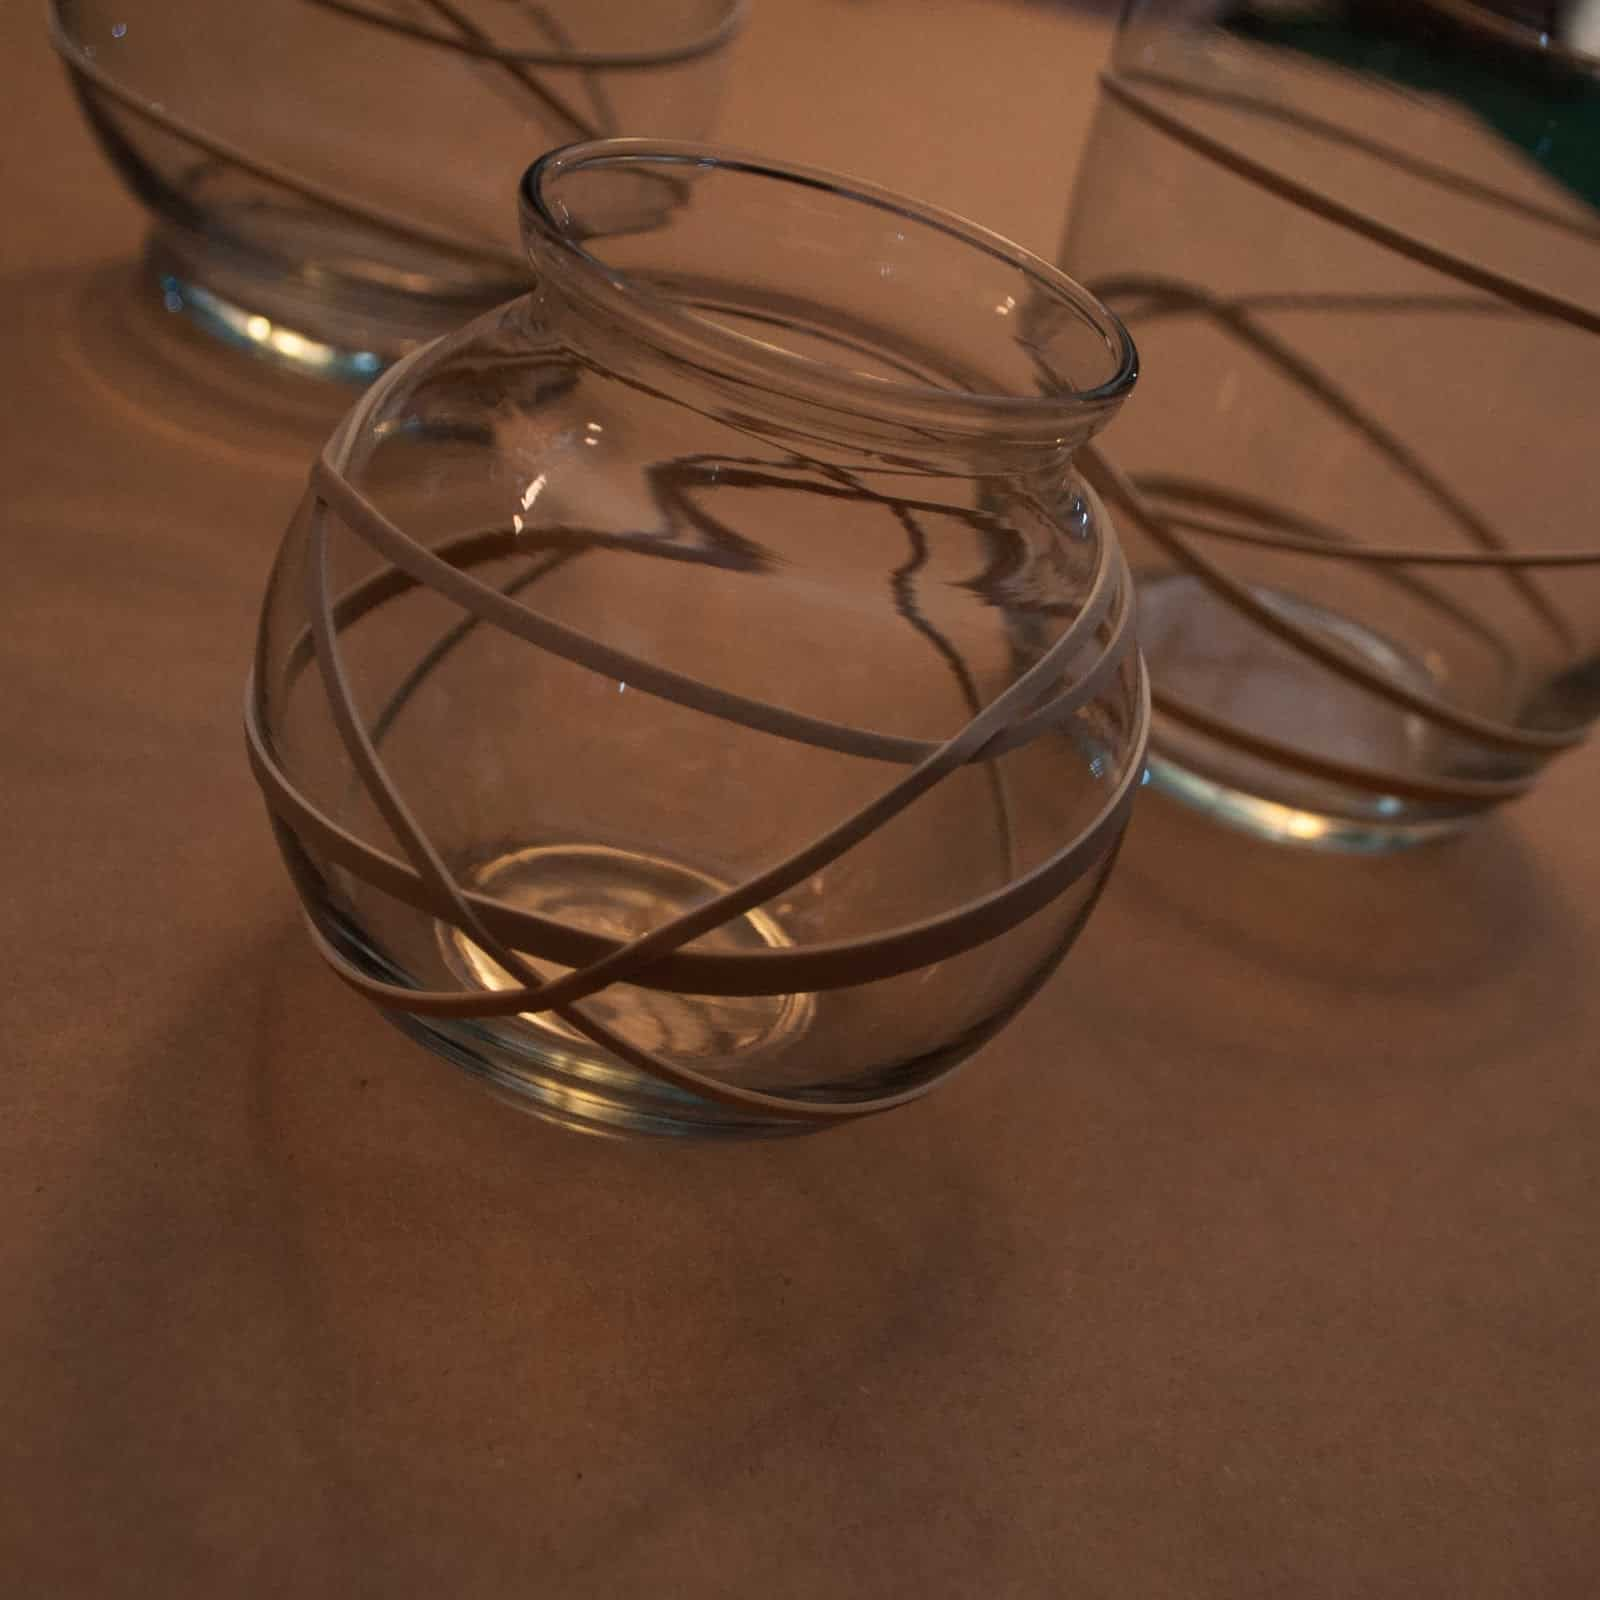 Frosted rubber band glasses